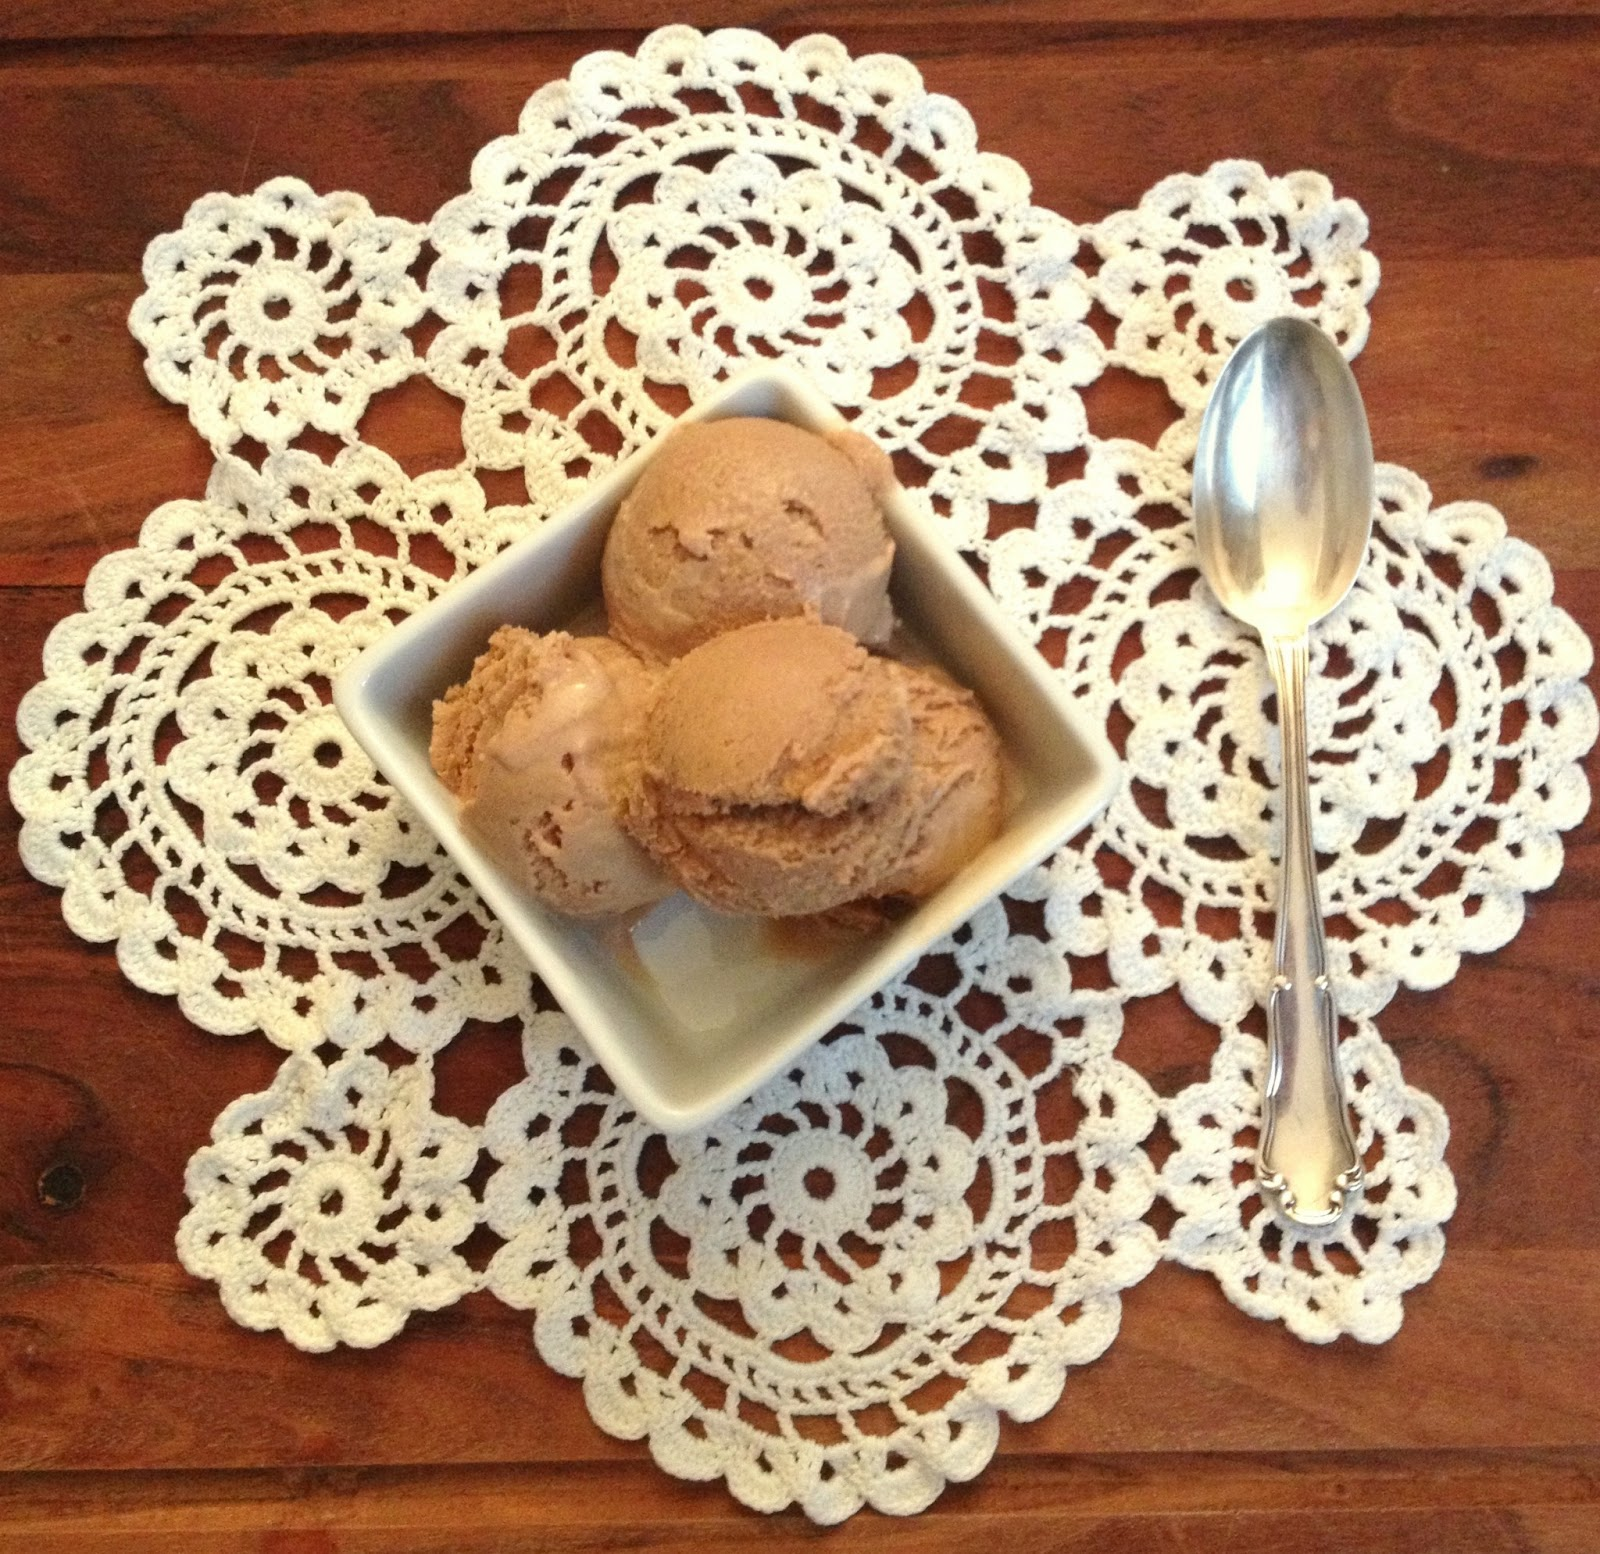 Starbooks: GUINNESS MILK CHOCOLATE ICE CREAM